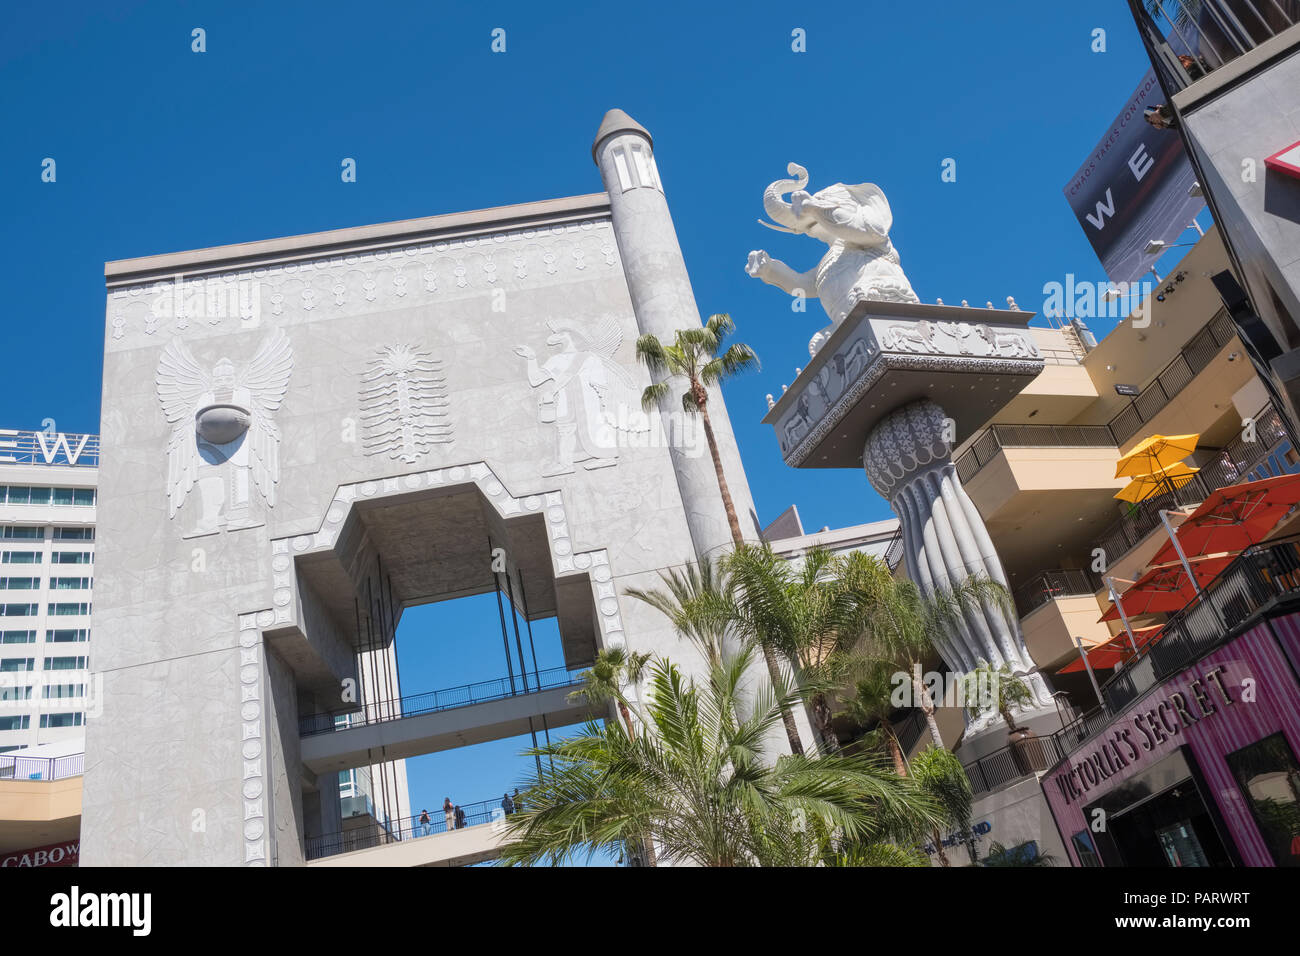 Egyptian themed buildings and architecture at the Hollywood & Highland retail centre, Hollywood Boulevard, Los Angeles, LA, California, USA - Stock Image